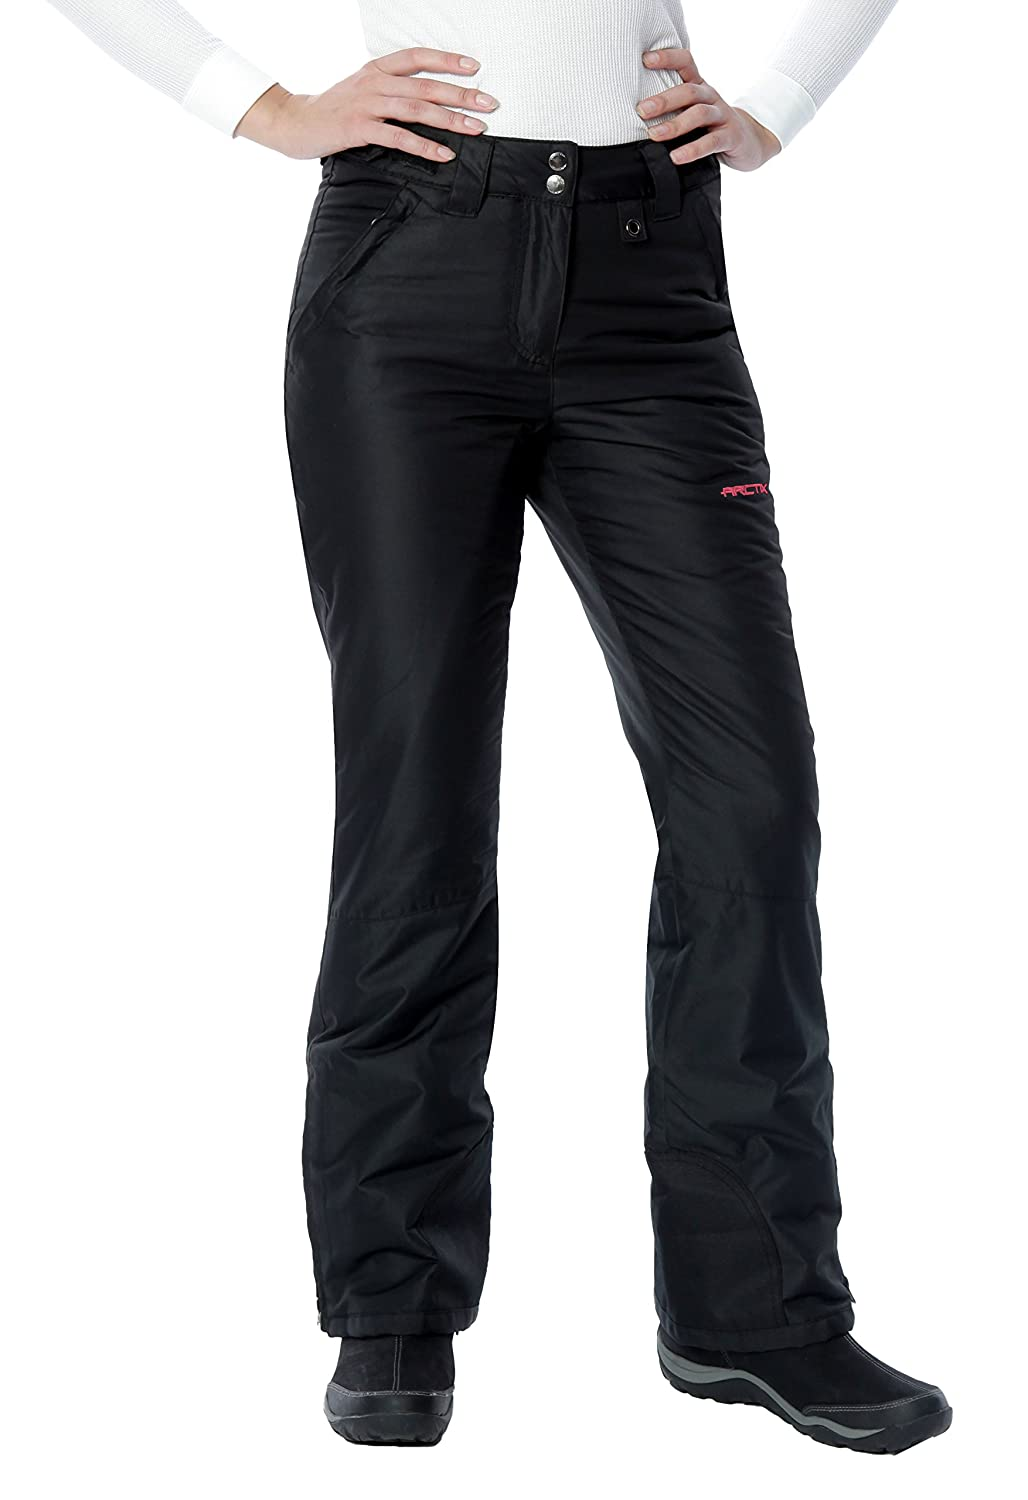 A must have item for any rider when attacking the slopes is a great pair of Snowboard Pants. Snowboard pants ensure you stay warm and dry on the mountains while also having the necessary features to help improve your comfort and skills while riding.